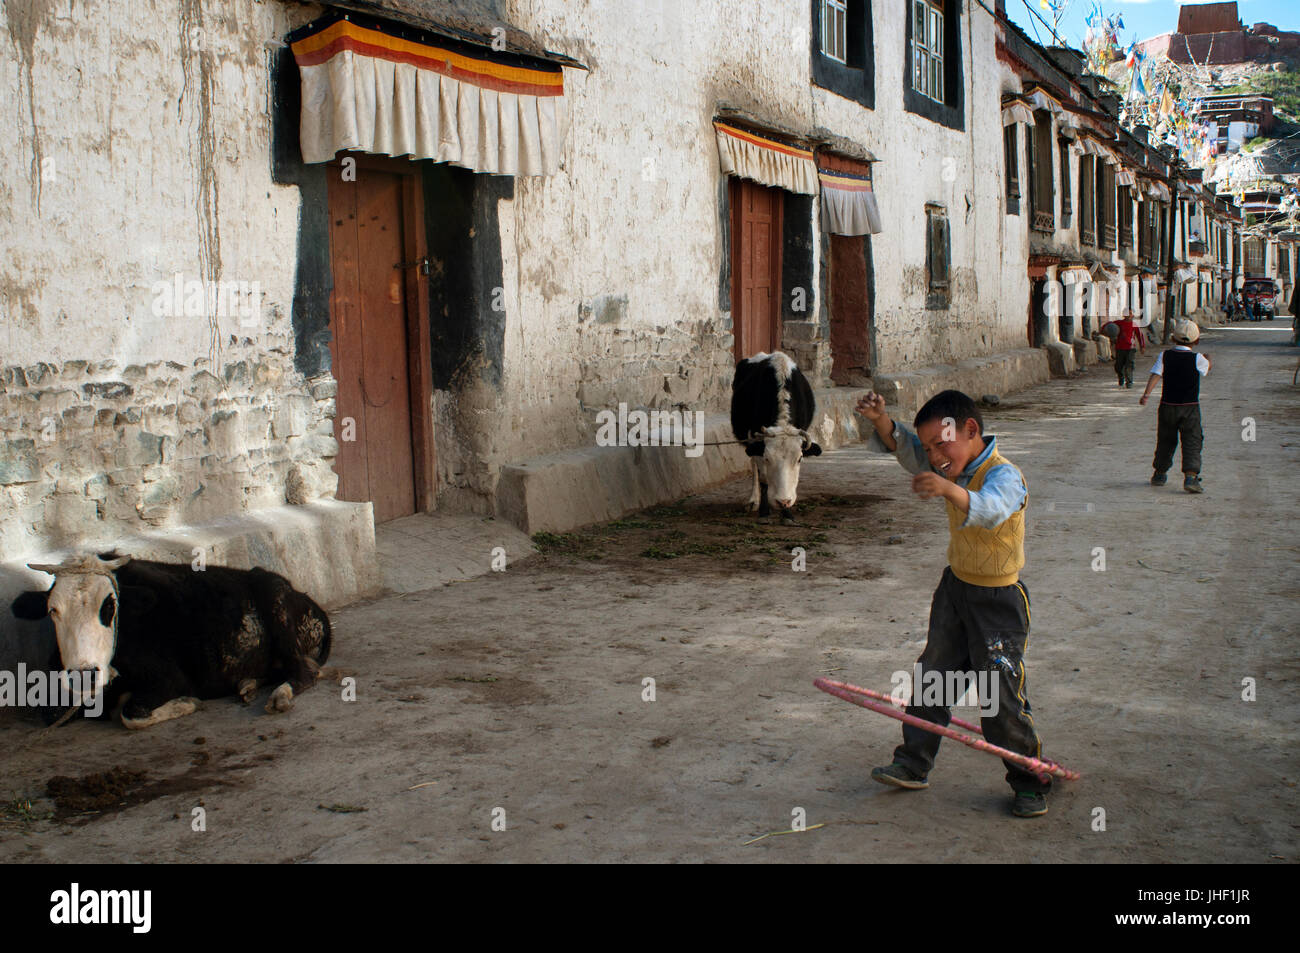 Two children play in the streets of the old town of Gyantse. Gyantse village, Tibet, China. - Stock Image